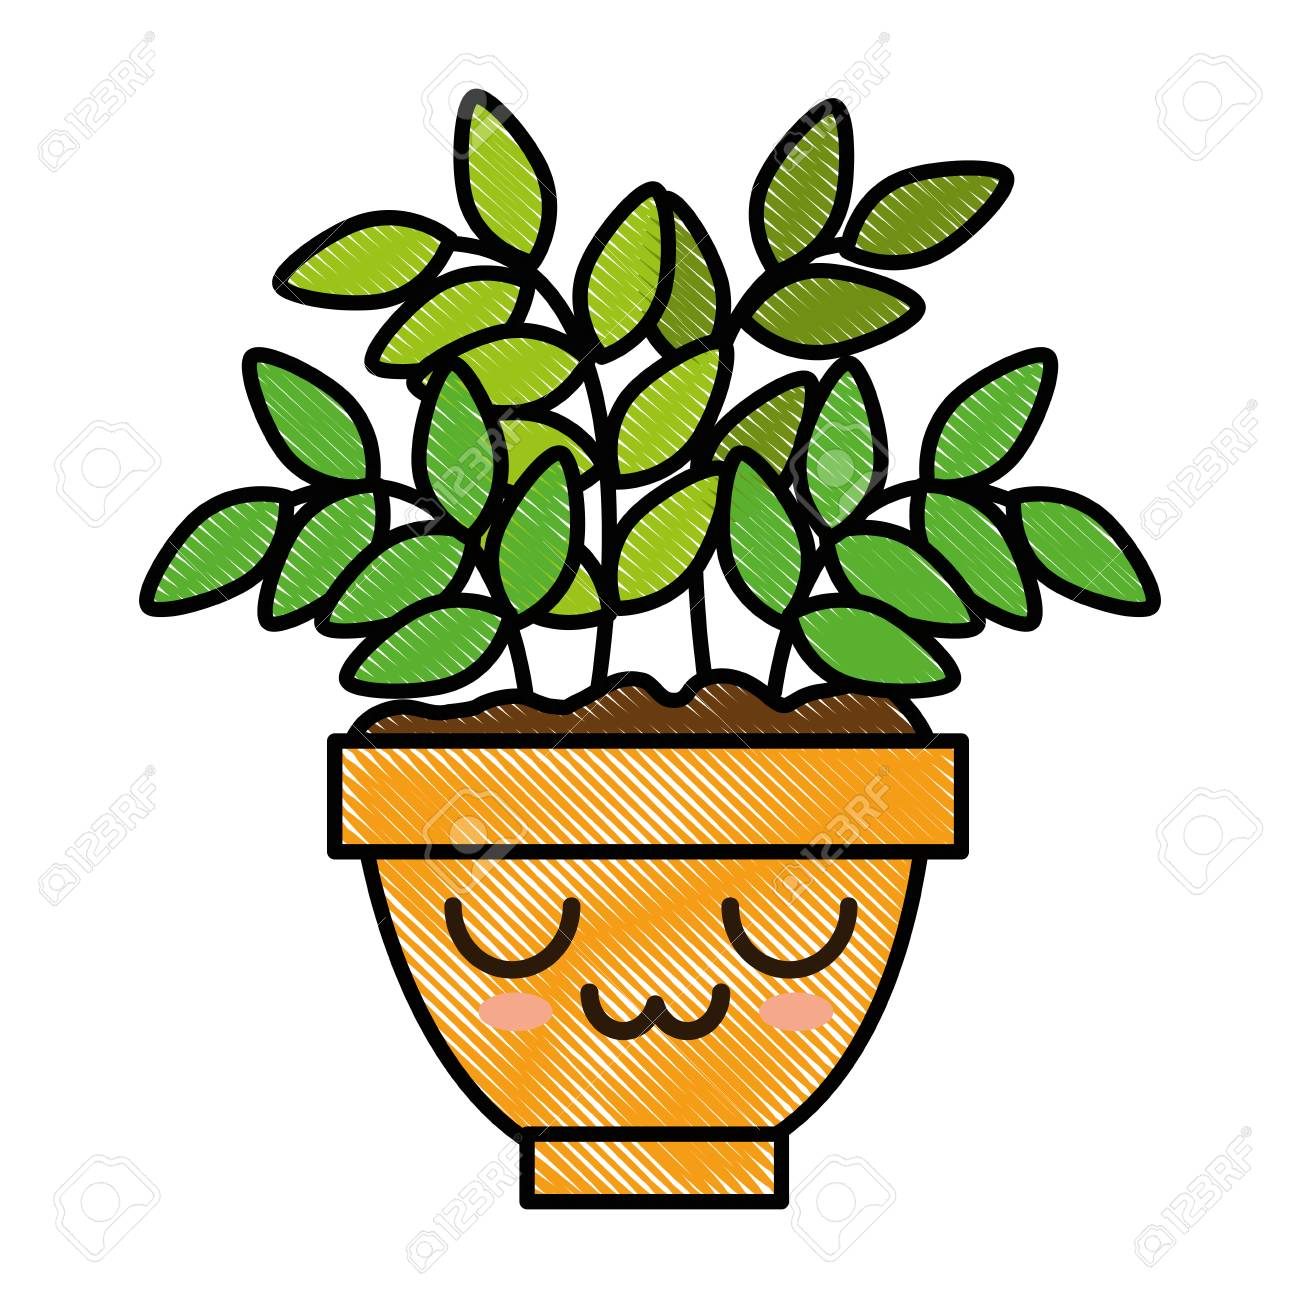 House Plant In Pot Cute Character Illustration Design Royalty Free Cliparts Vectors And Stock Illustration Image 92398796